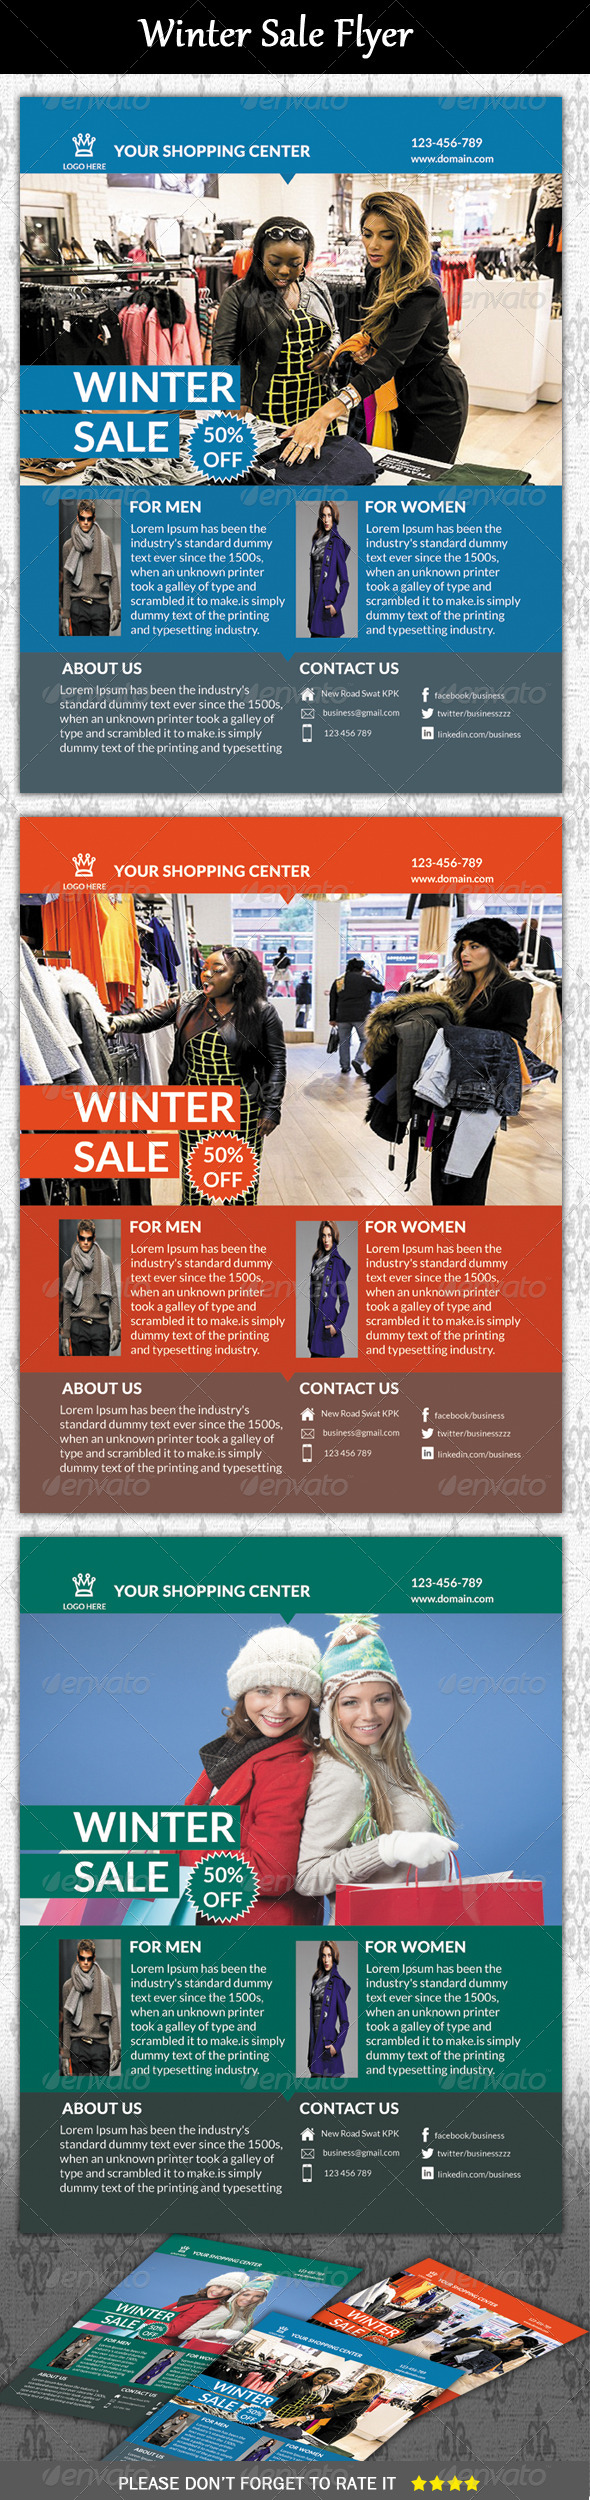 Winter Sale Flyer - Corporate Flyers